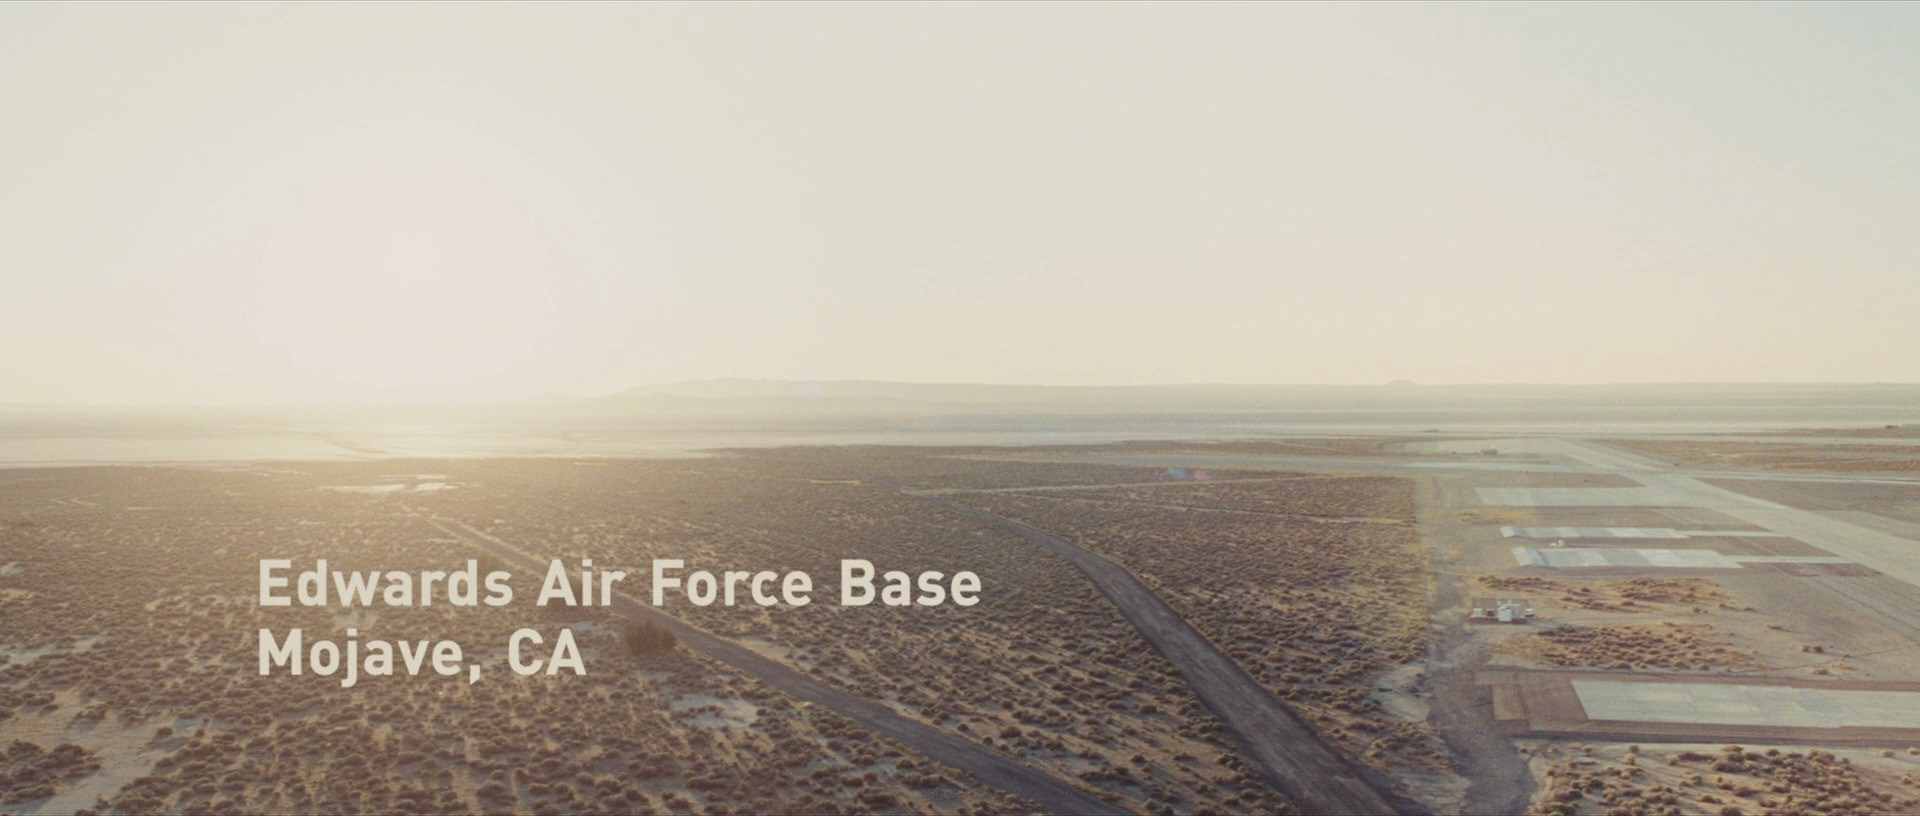 Iron Man 2 Filming Locations | Edwards Air Force Base